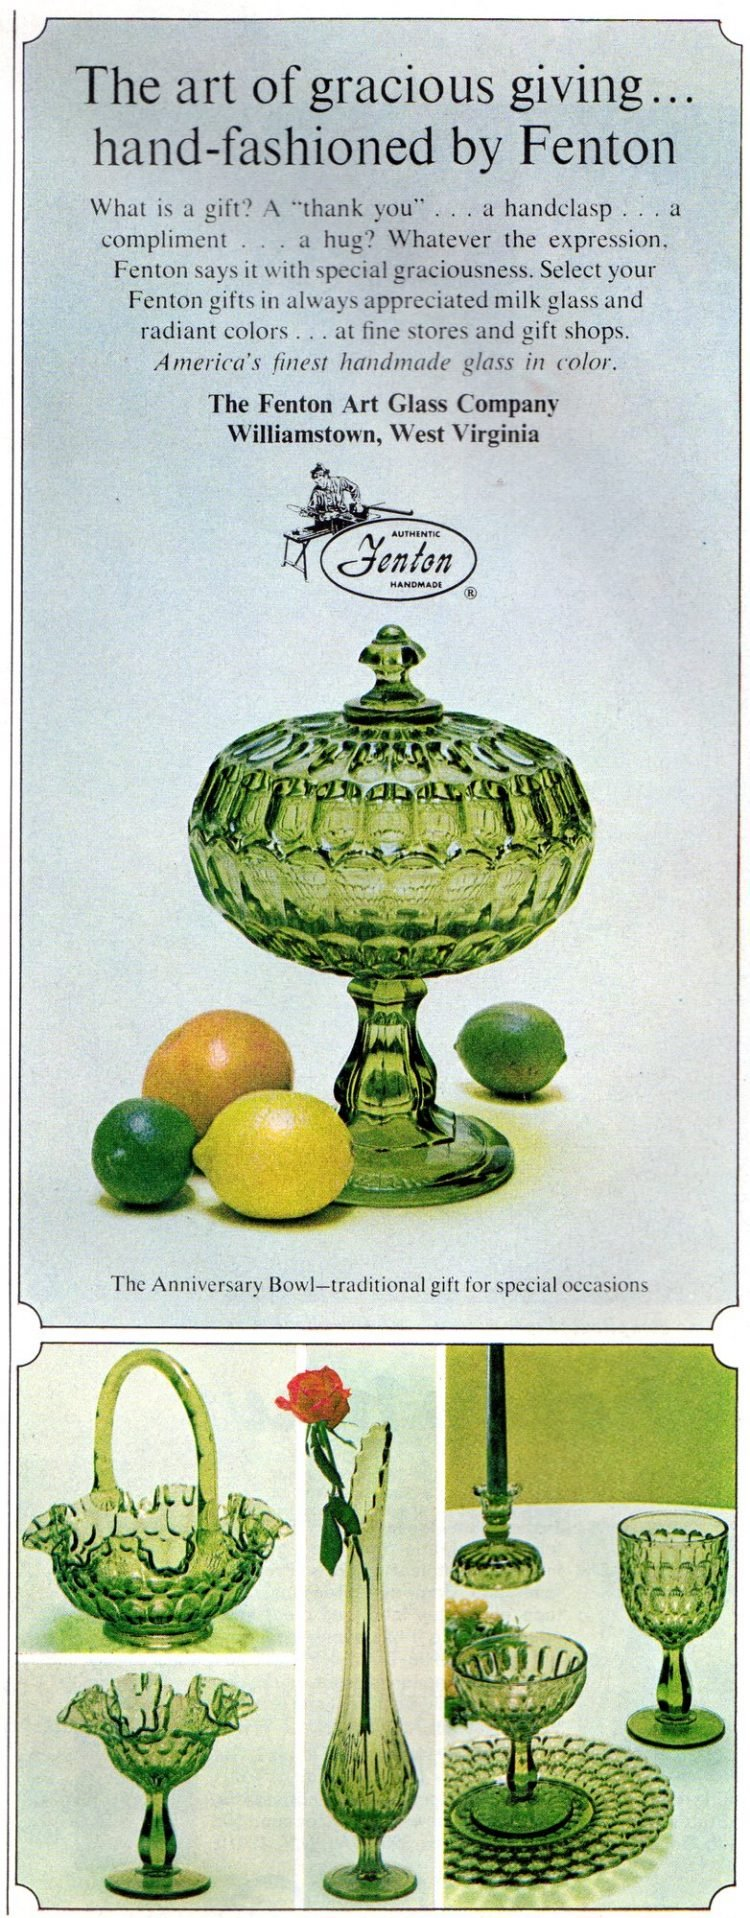 Fenton green glass home decor from 1966